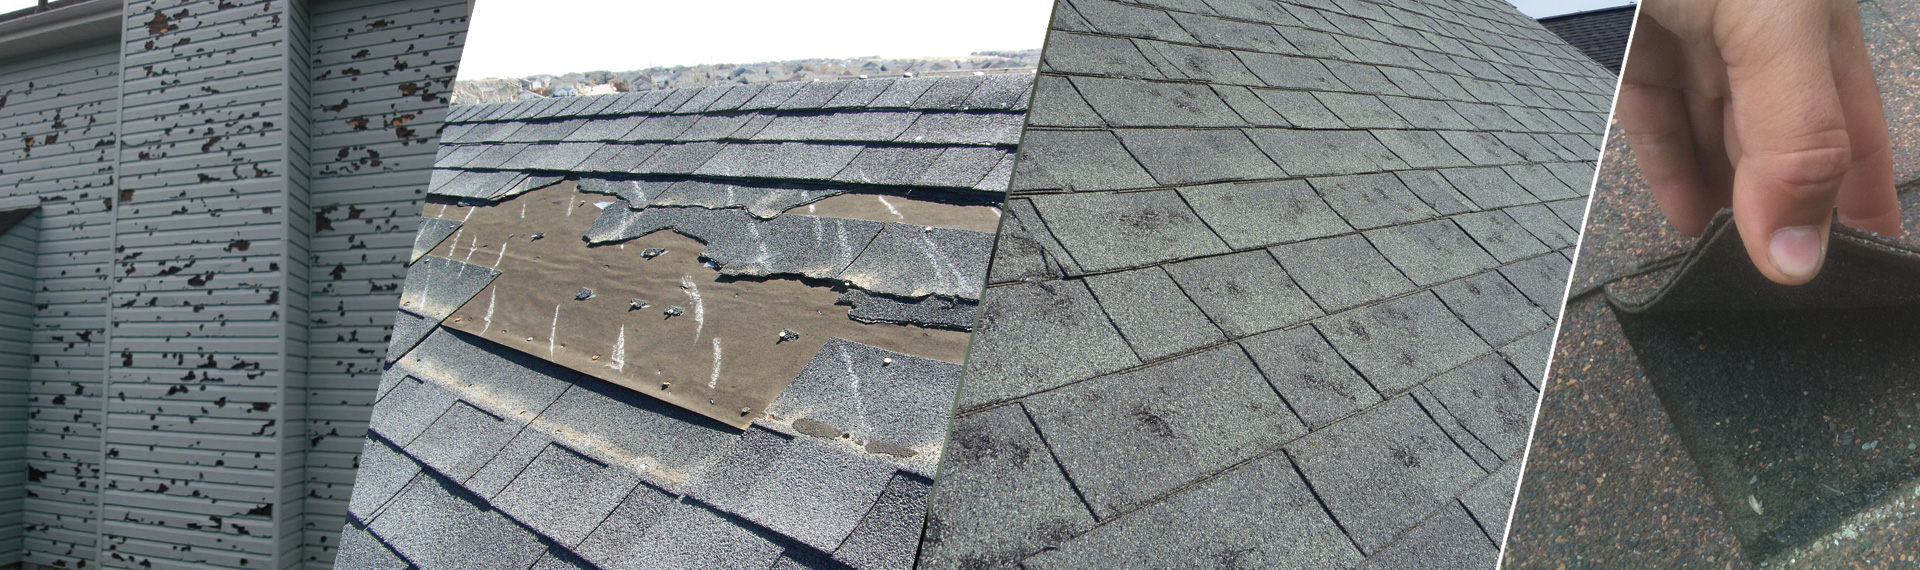 Denver Roofing & Construction Lone Tree CO